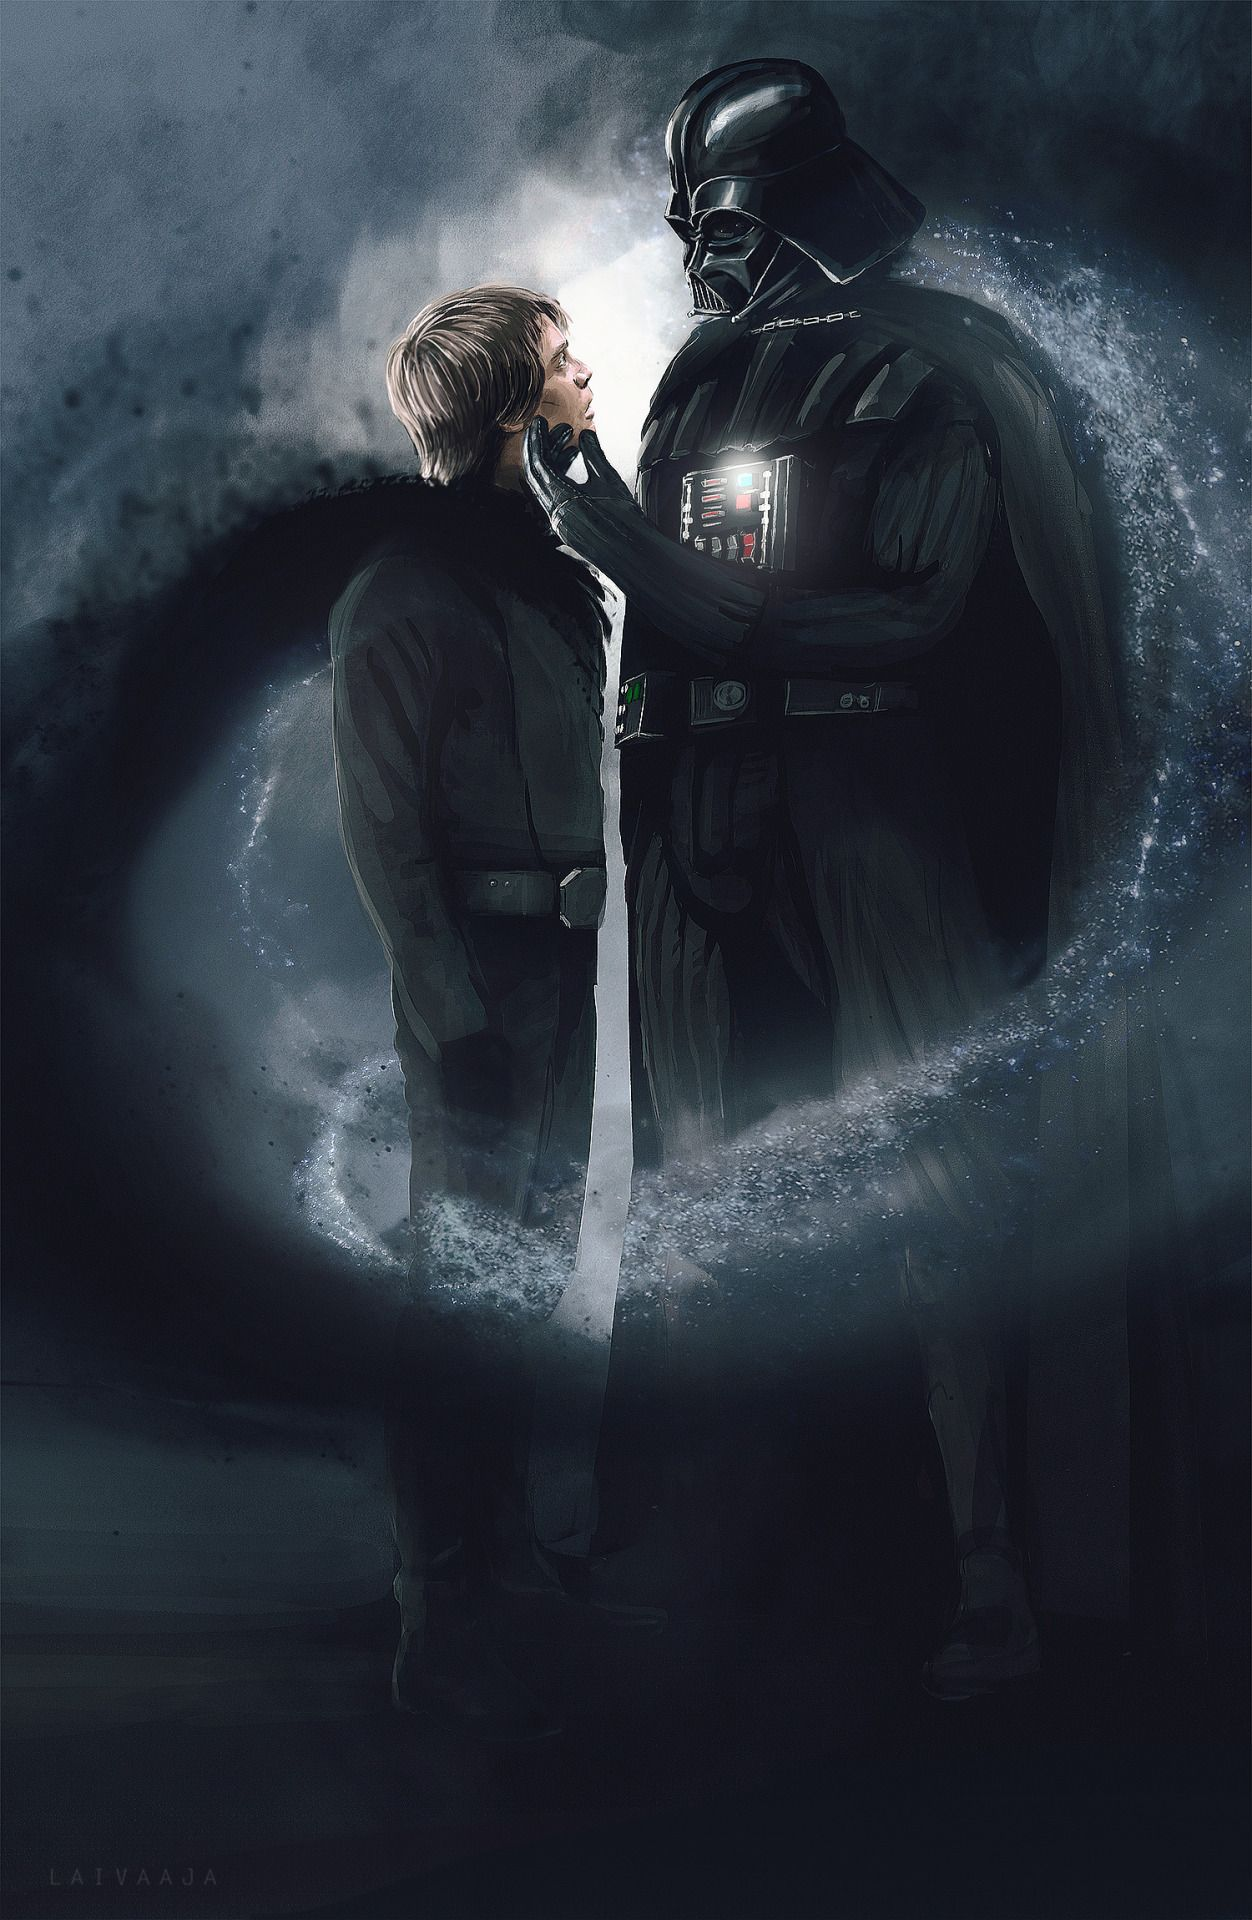 My Visualization Attempts Of A Great Vader Luke Fic Continue If You Have Not Yet Read The Latest Star War Star Wars Pictures Star Wars Images Star Wars Poster